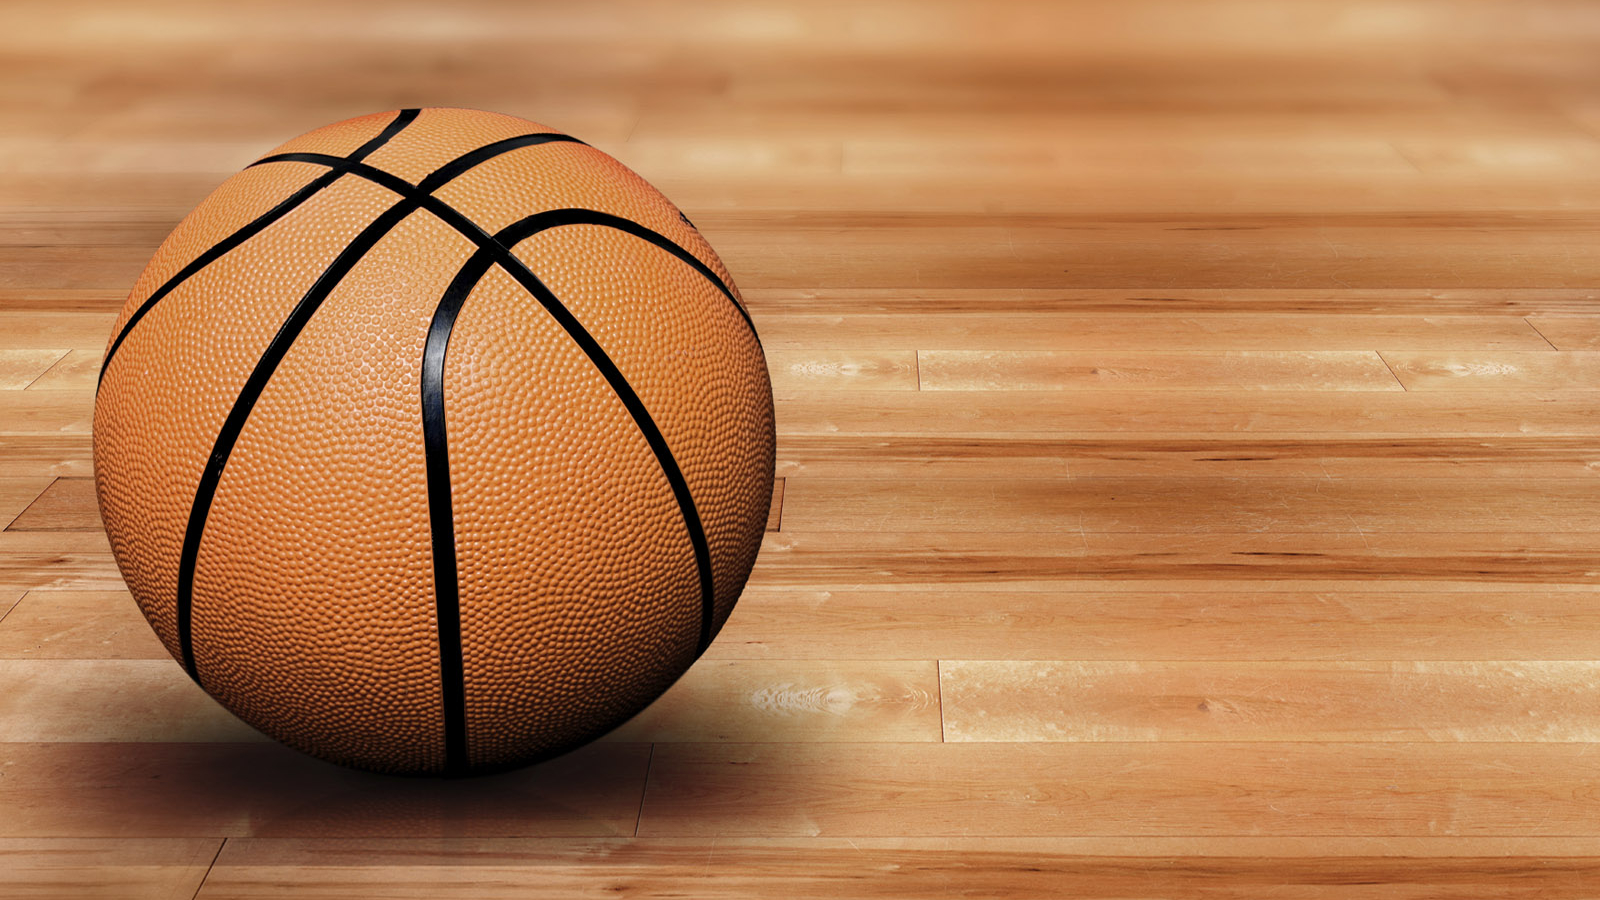 Free Download Basketball Court Nba Wallpaper Share This Cool Nba